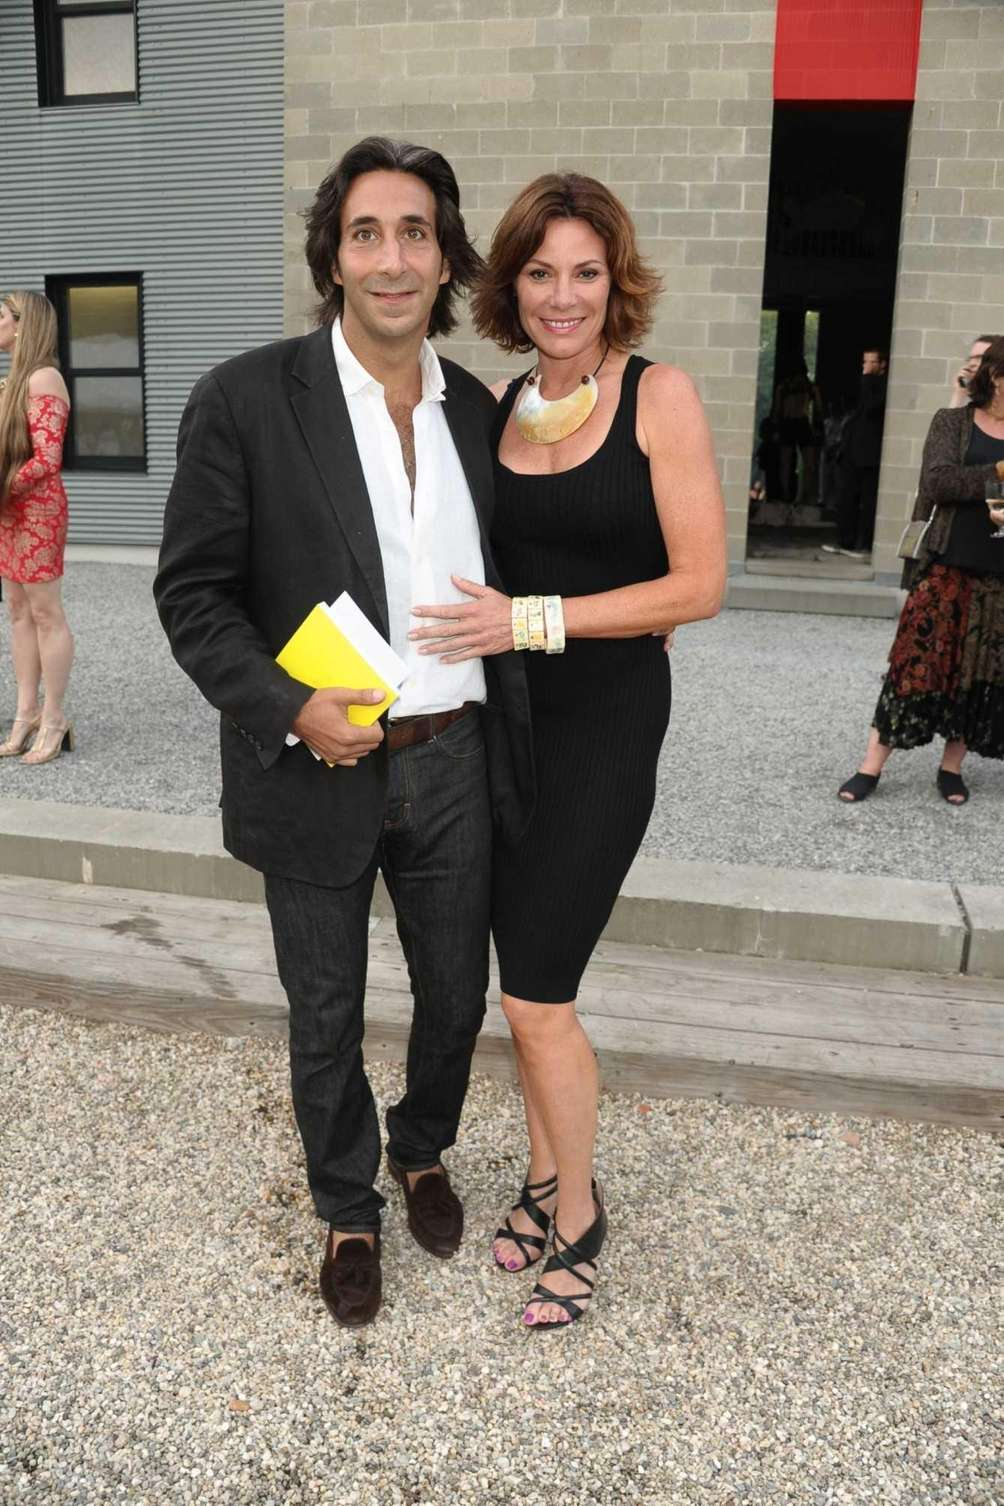 Jacques Azoulet and Countess LuAnn de Lesseps attend